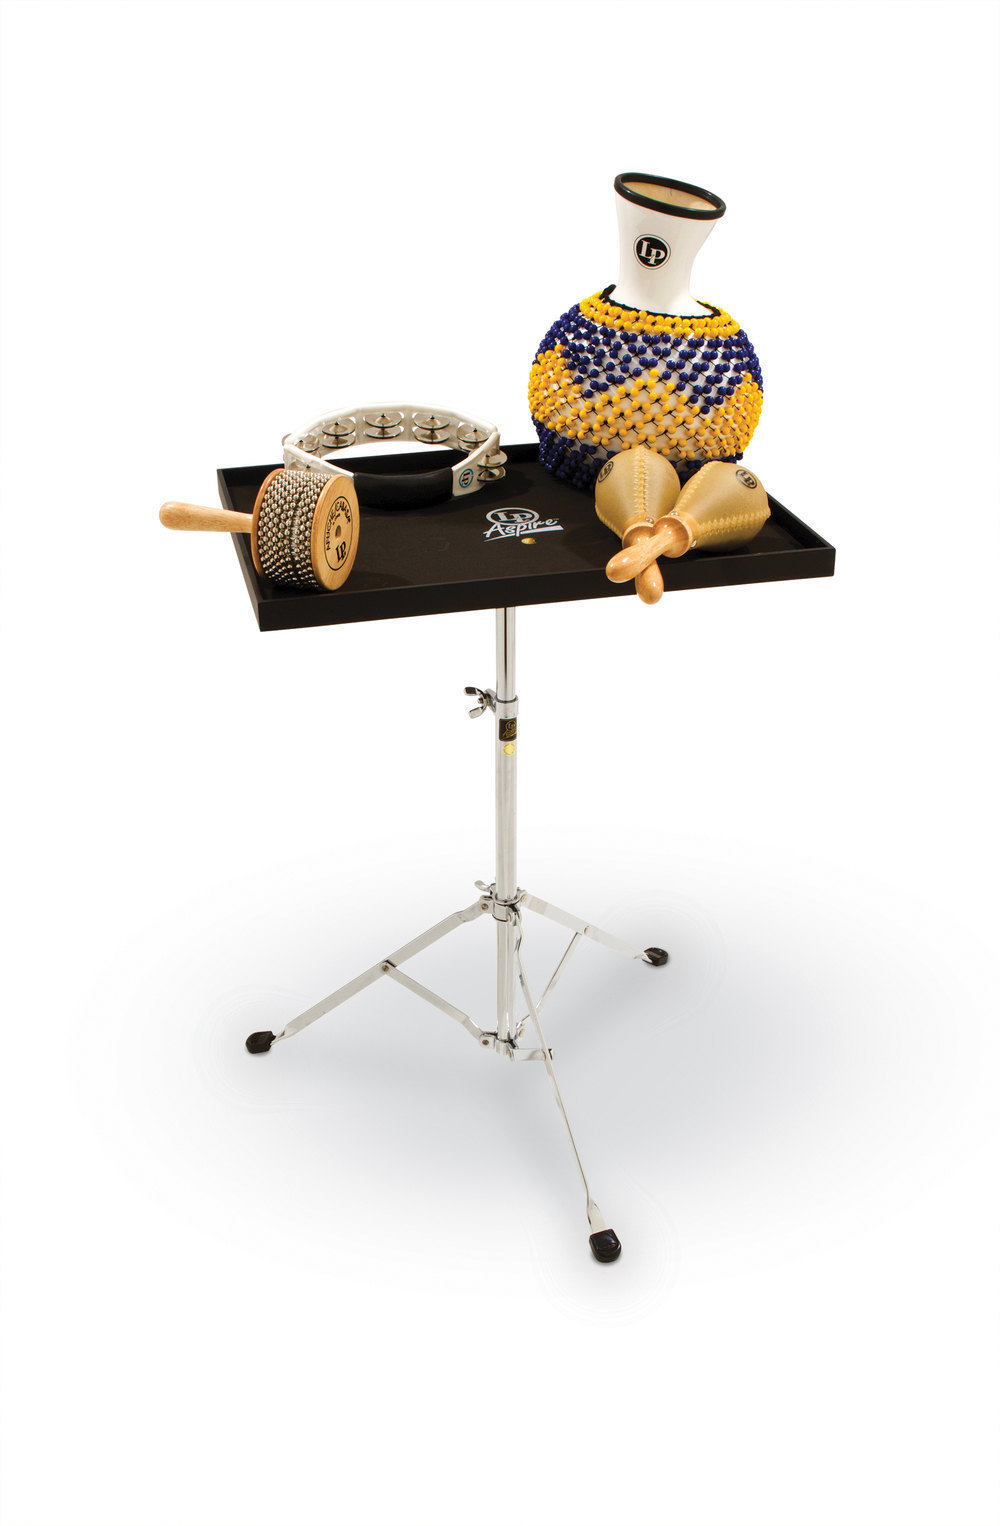 Billede af Percussion table Aspire Aspire instrument tray